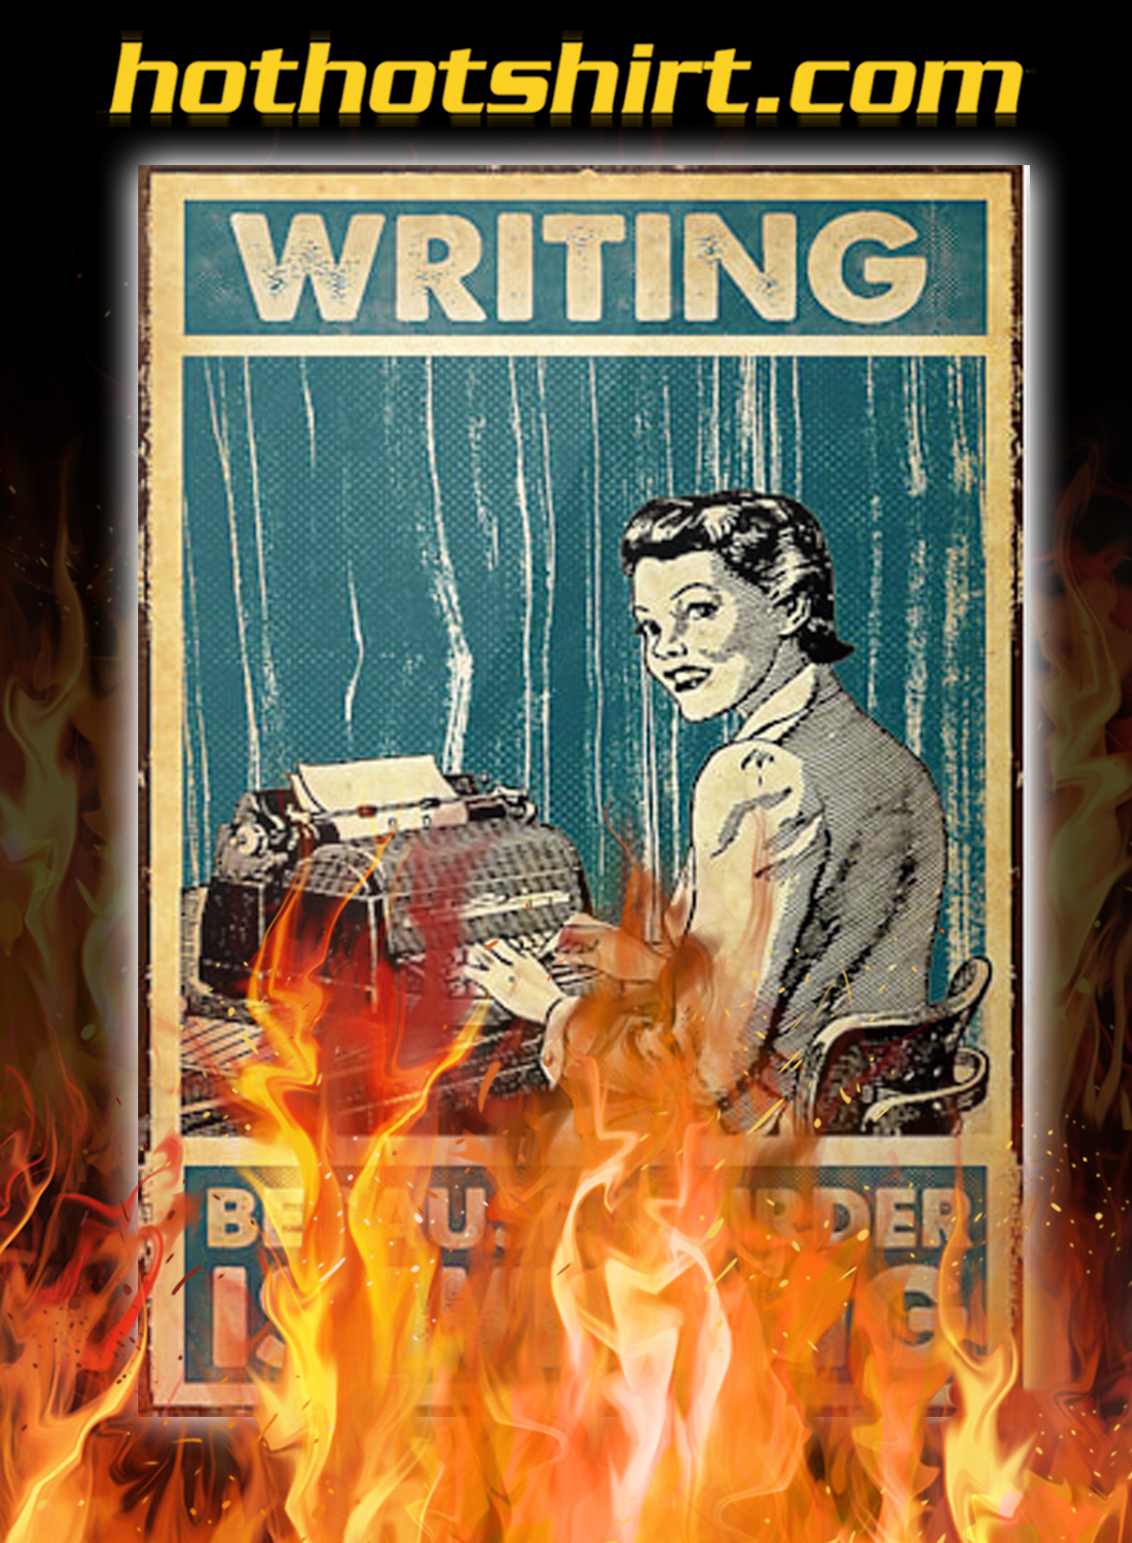 Typing girl writing because murder is wrong poster - A3